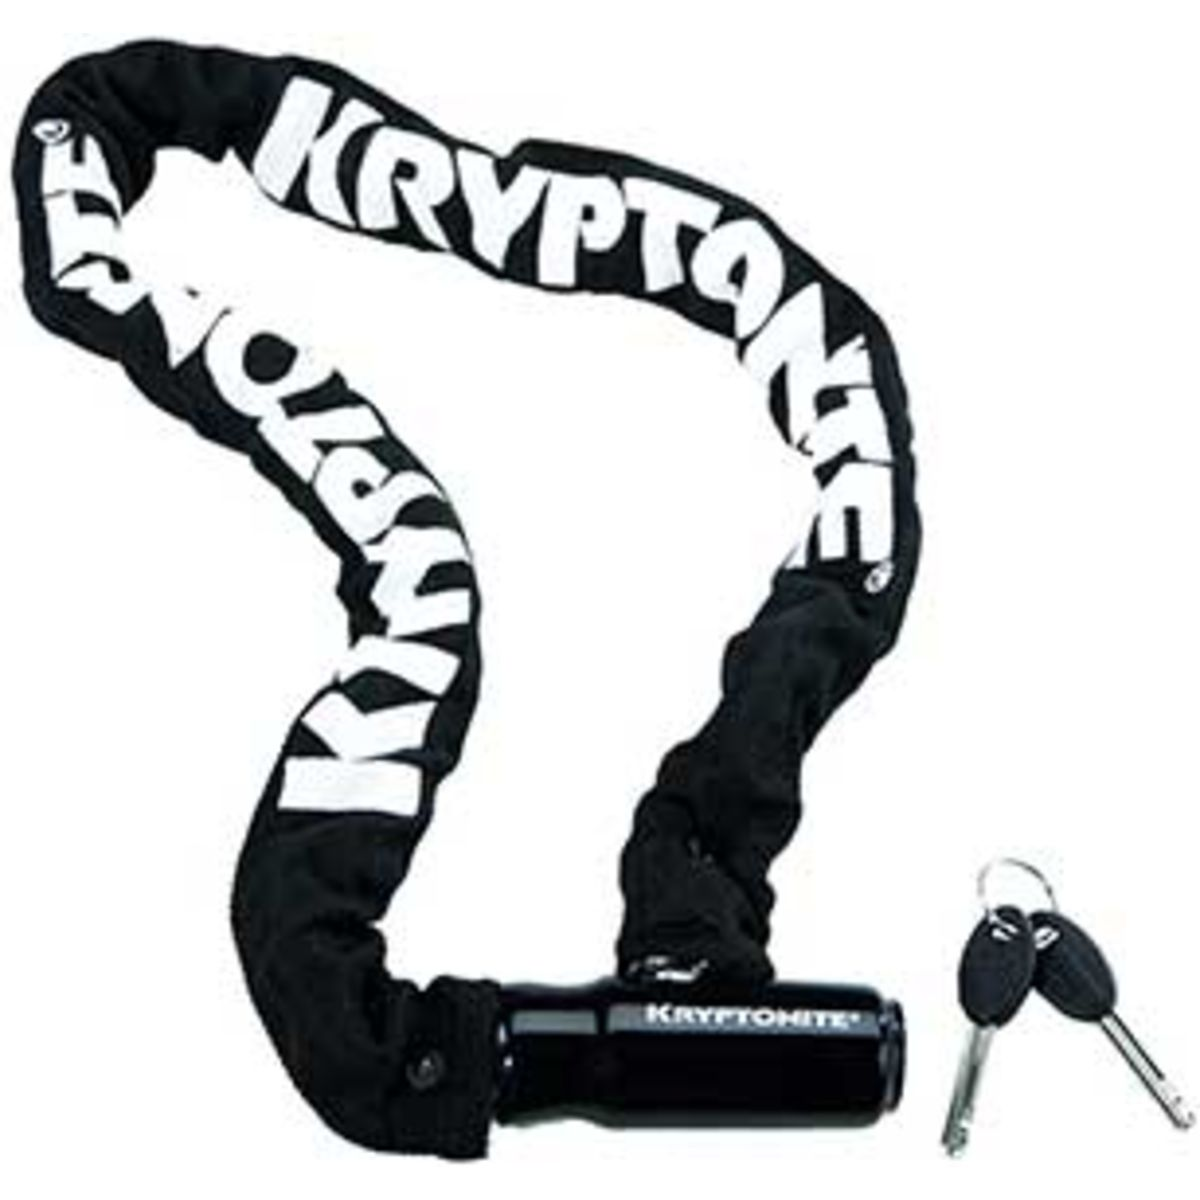 Keeper 785 Integrated Chain chain lock